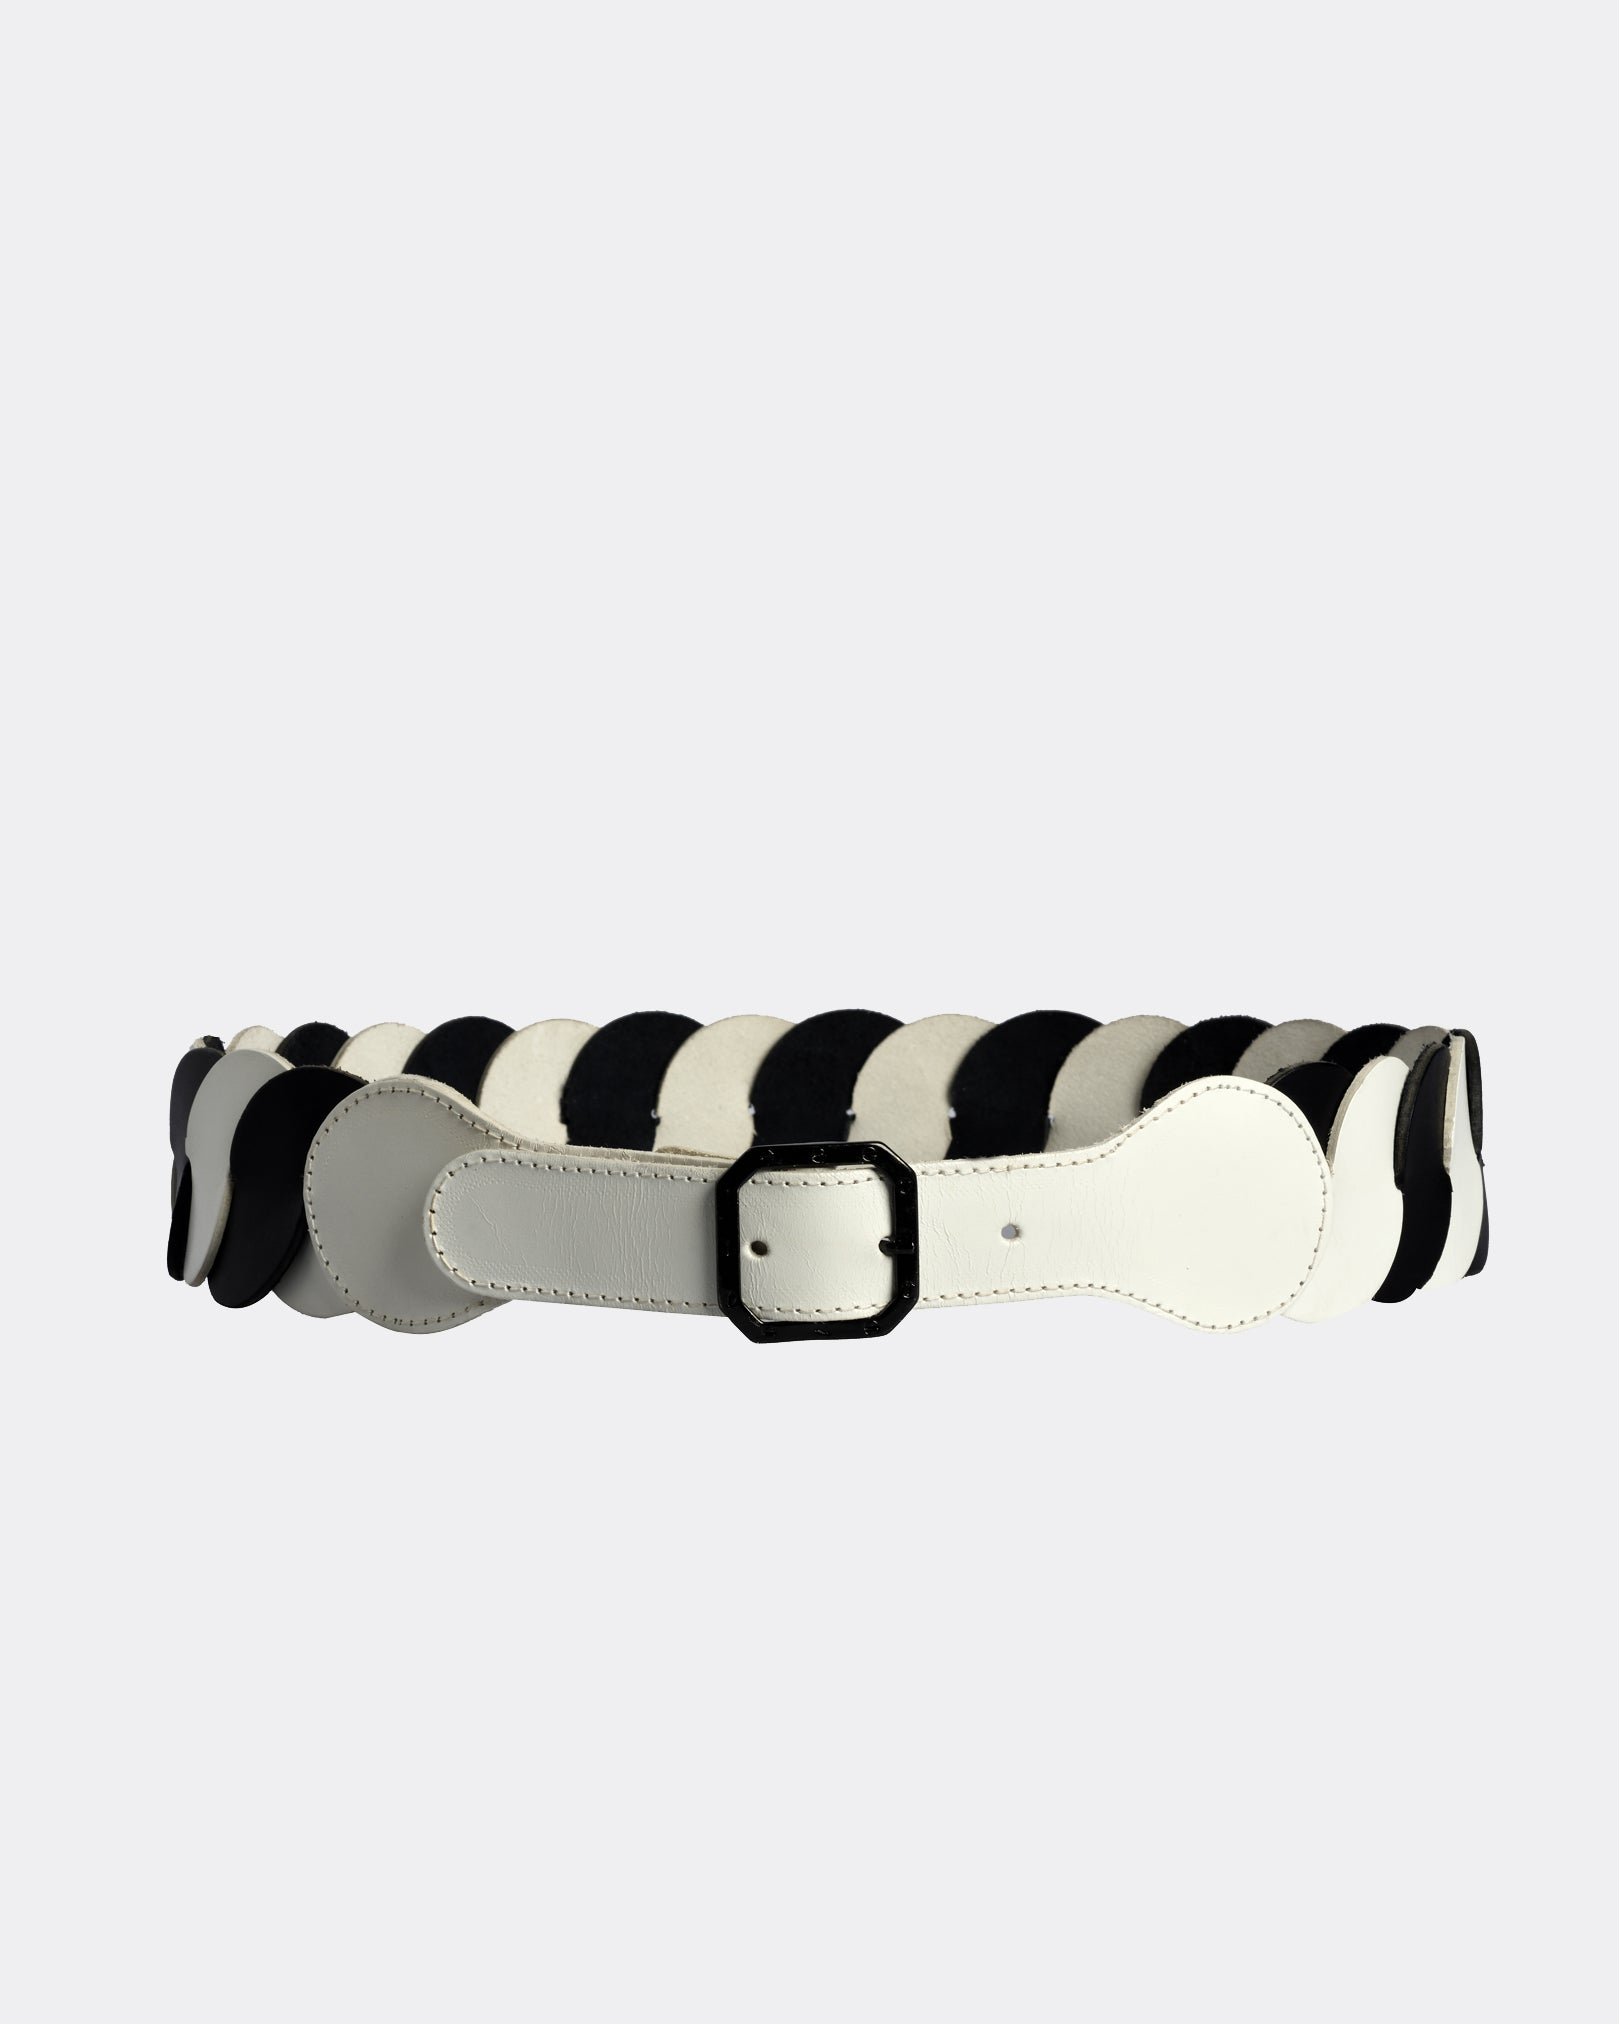 VINTAGE 1980s Black and White Leather Belt